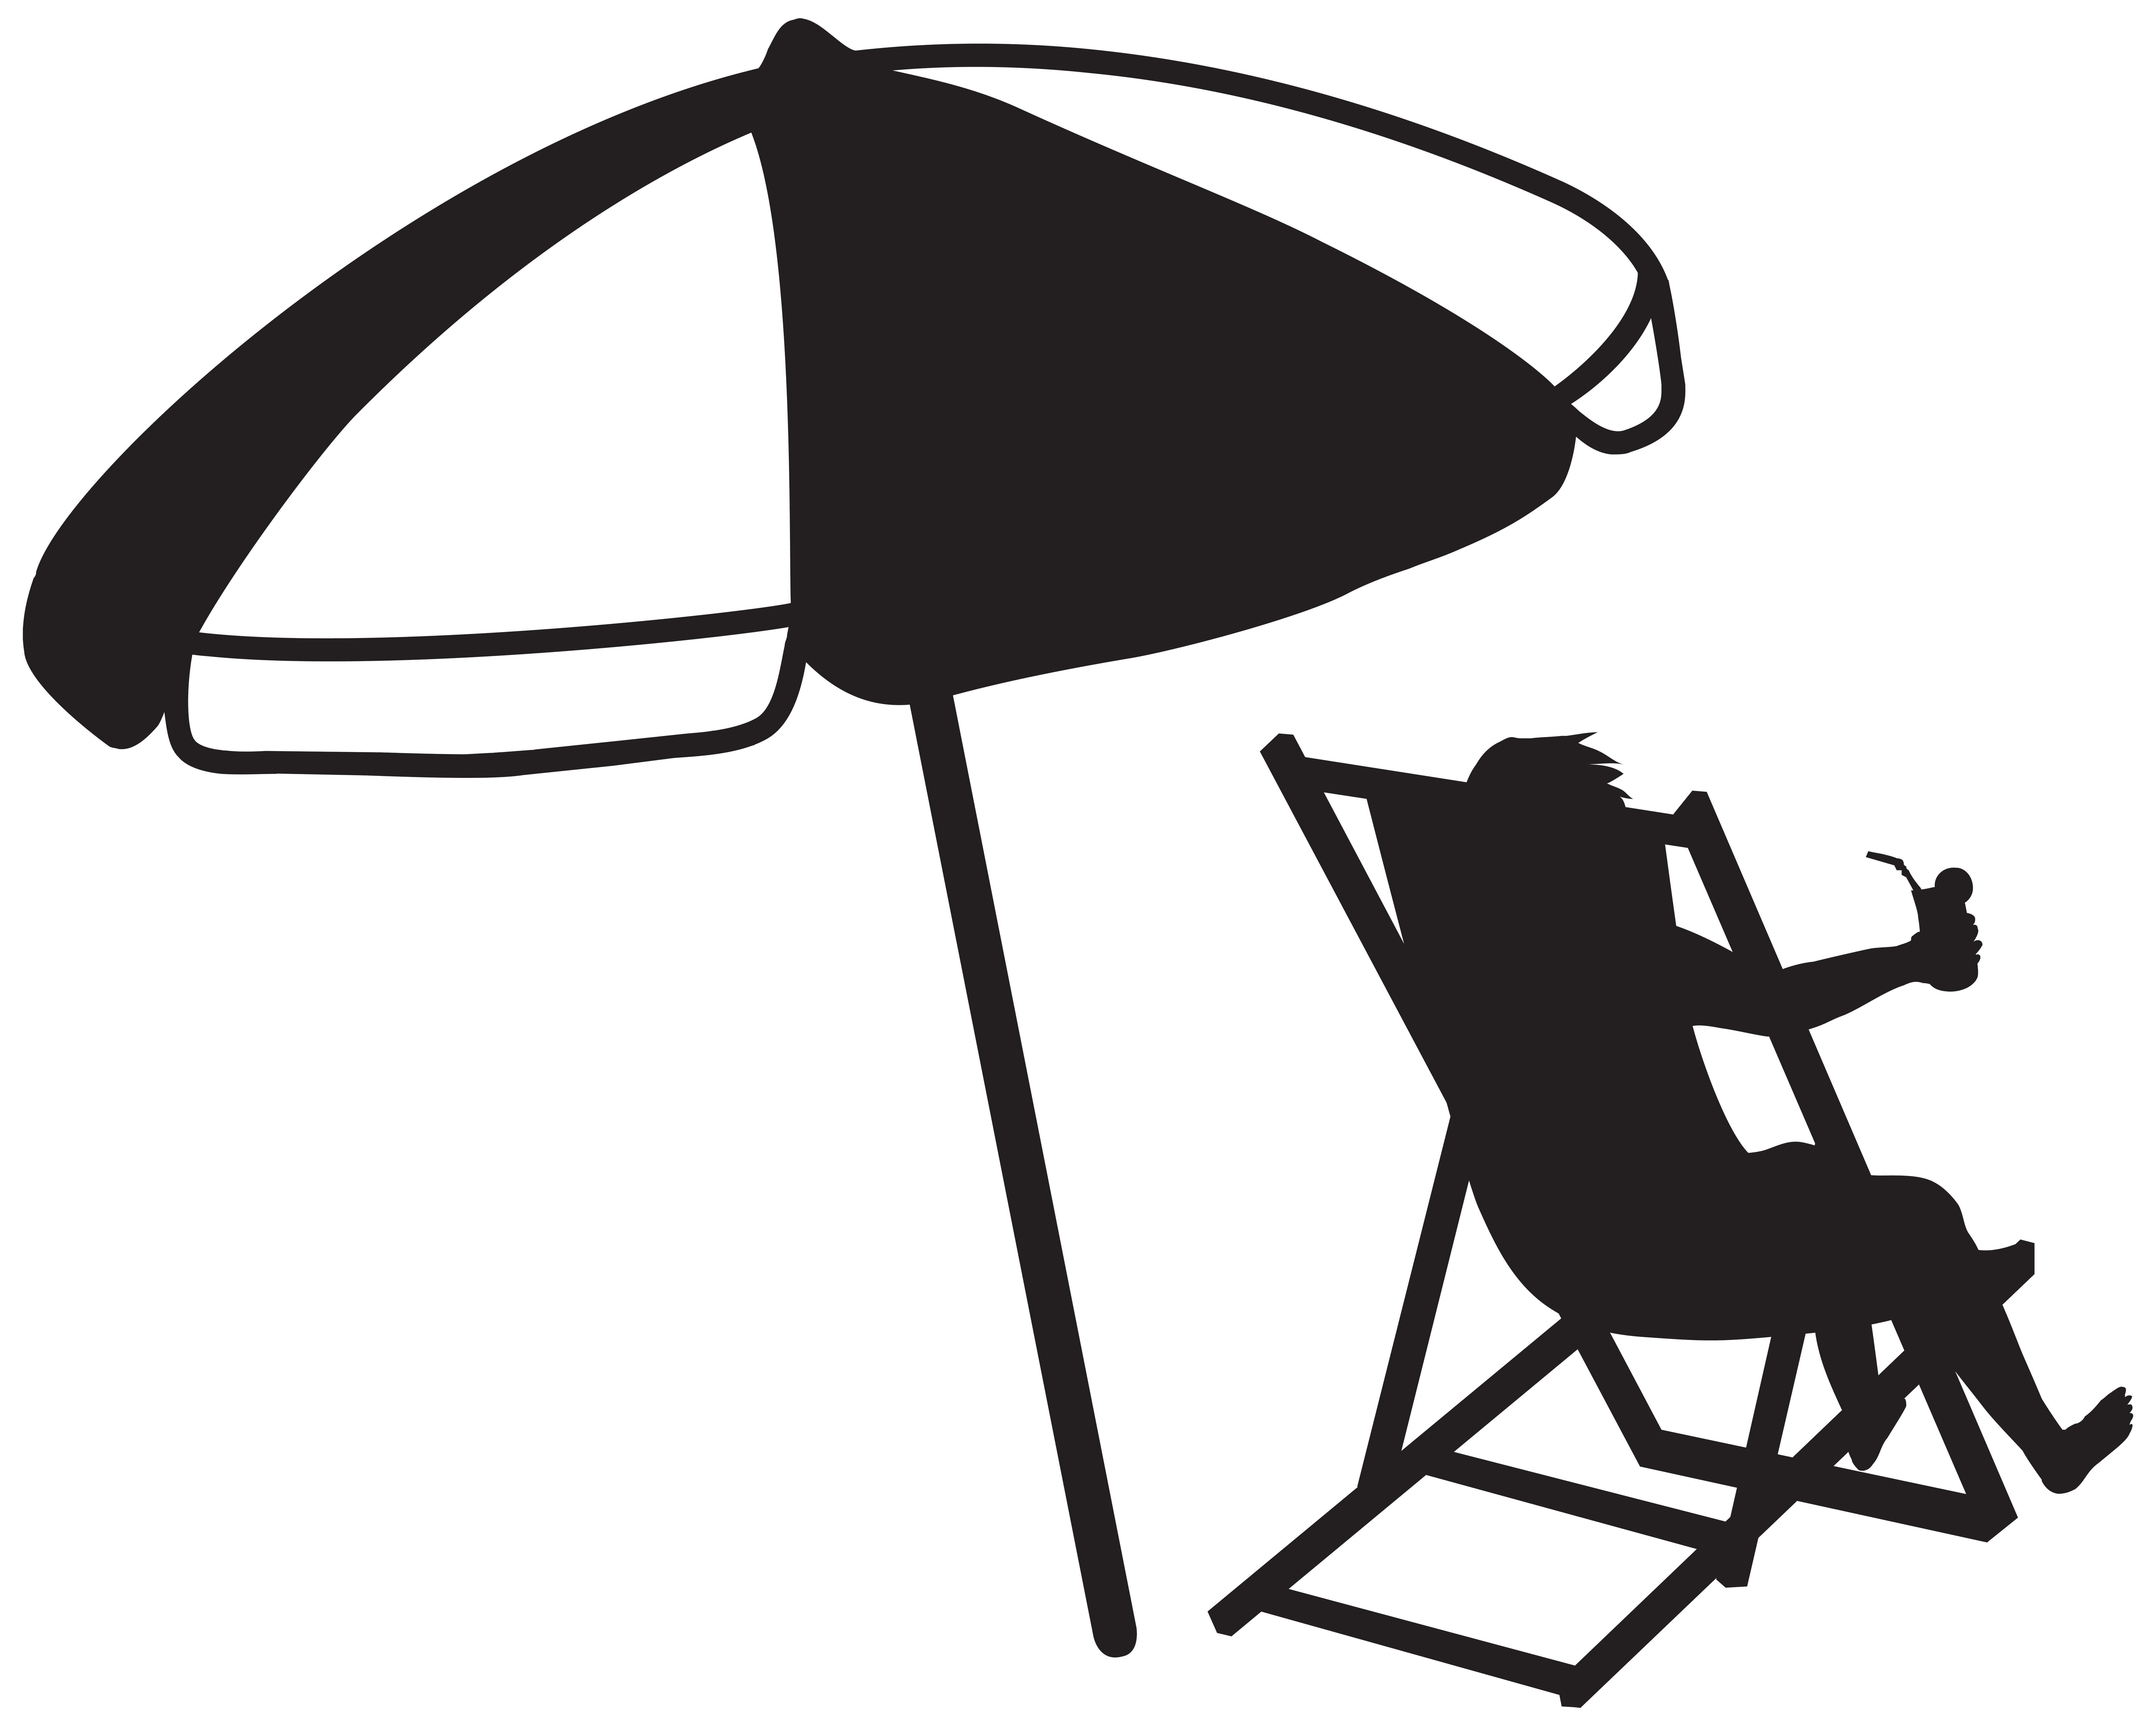 Umbrella clipart man Beach and Transparent the with